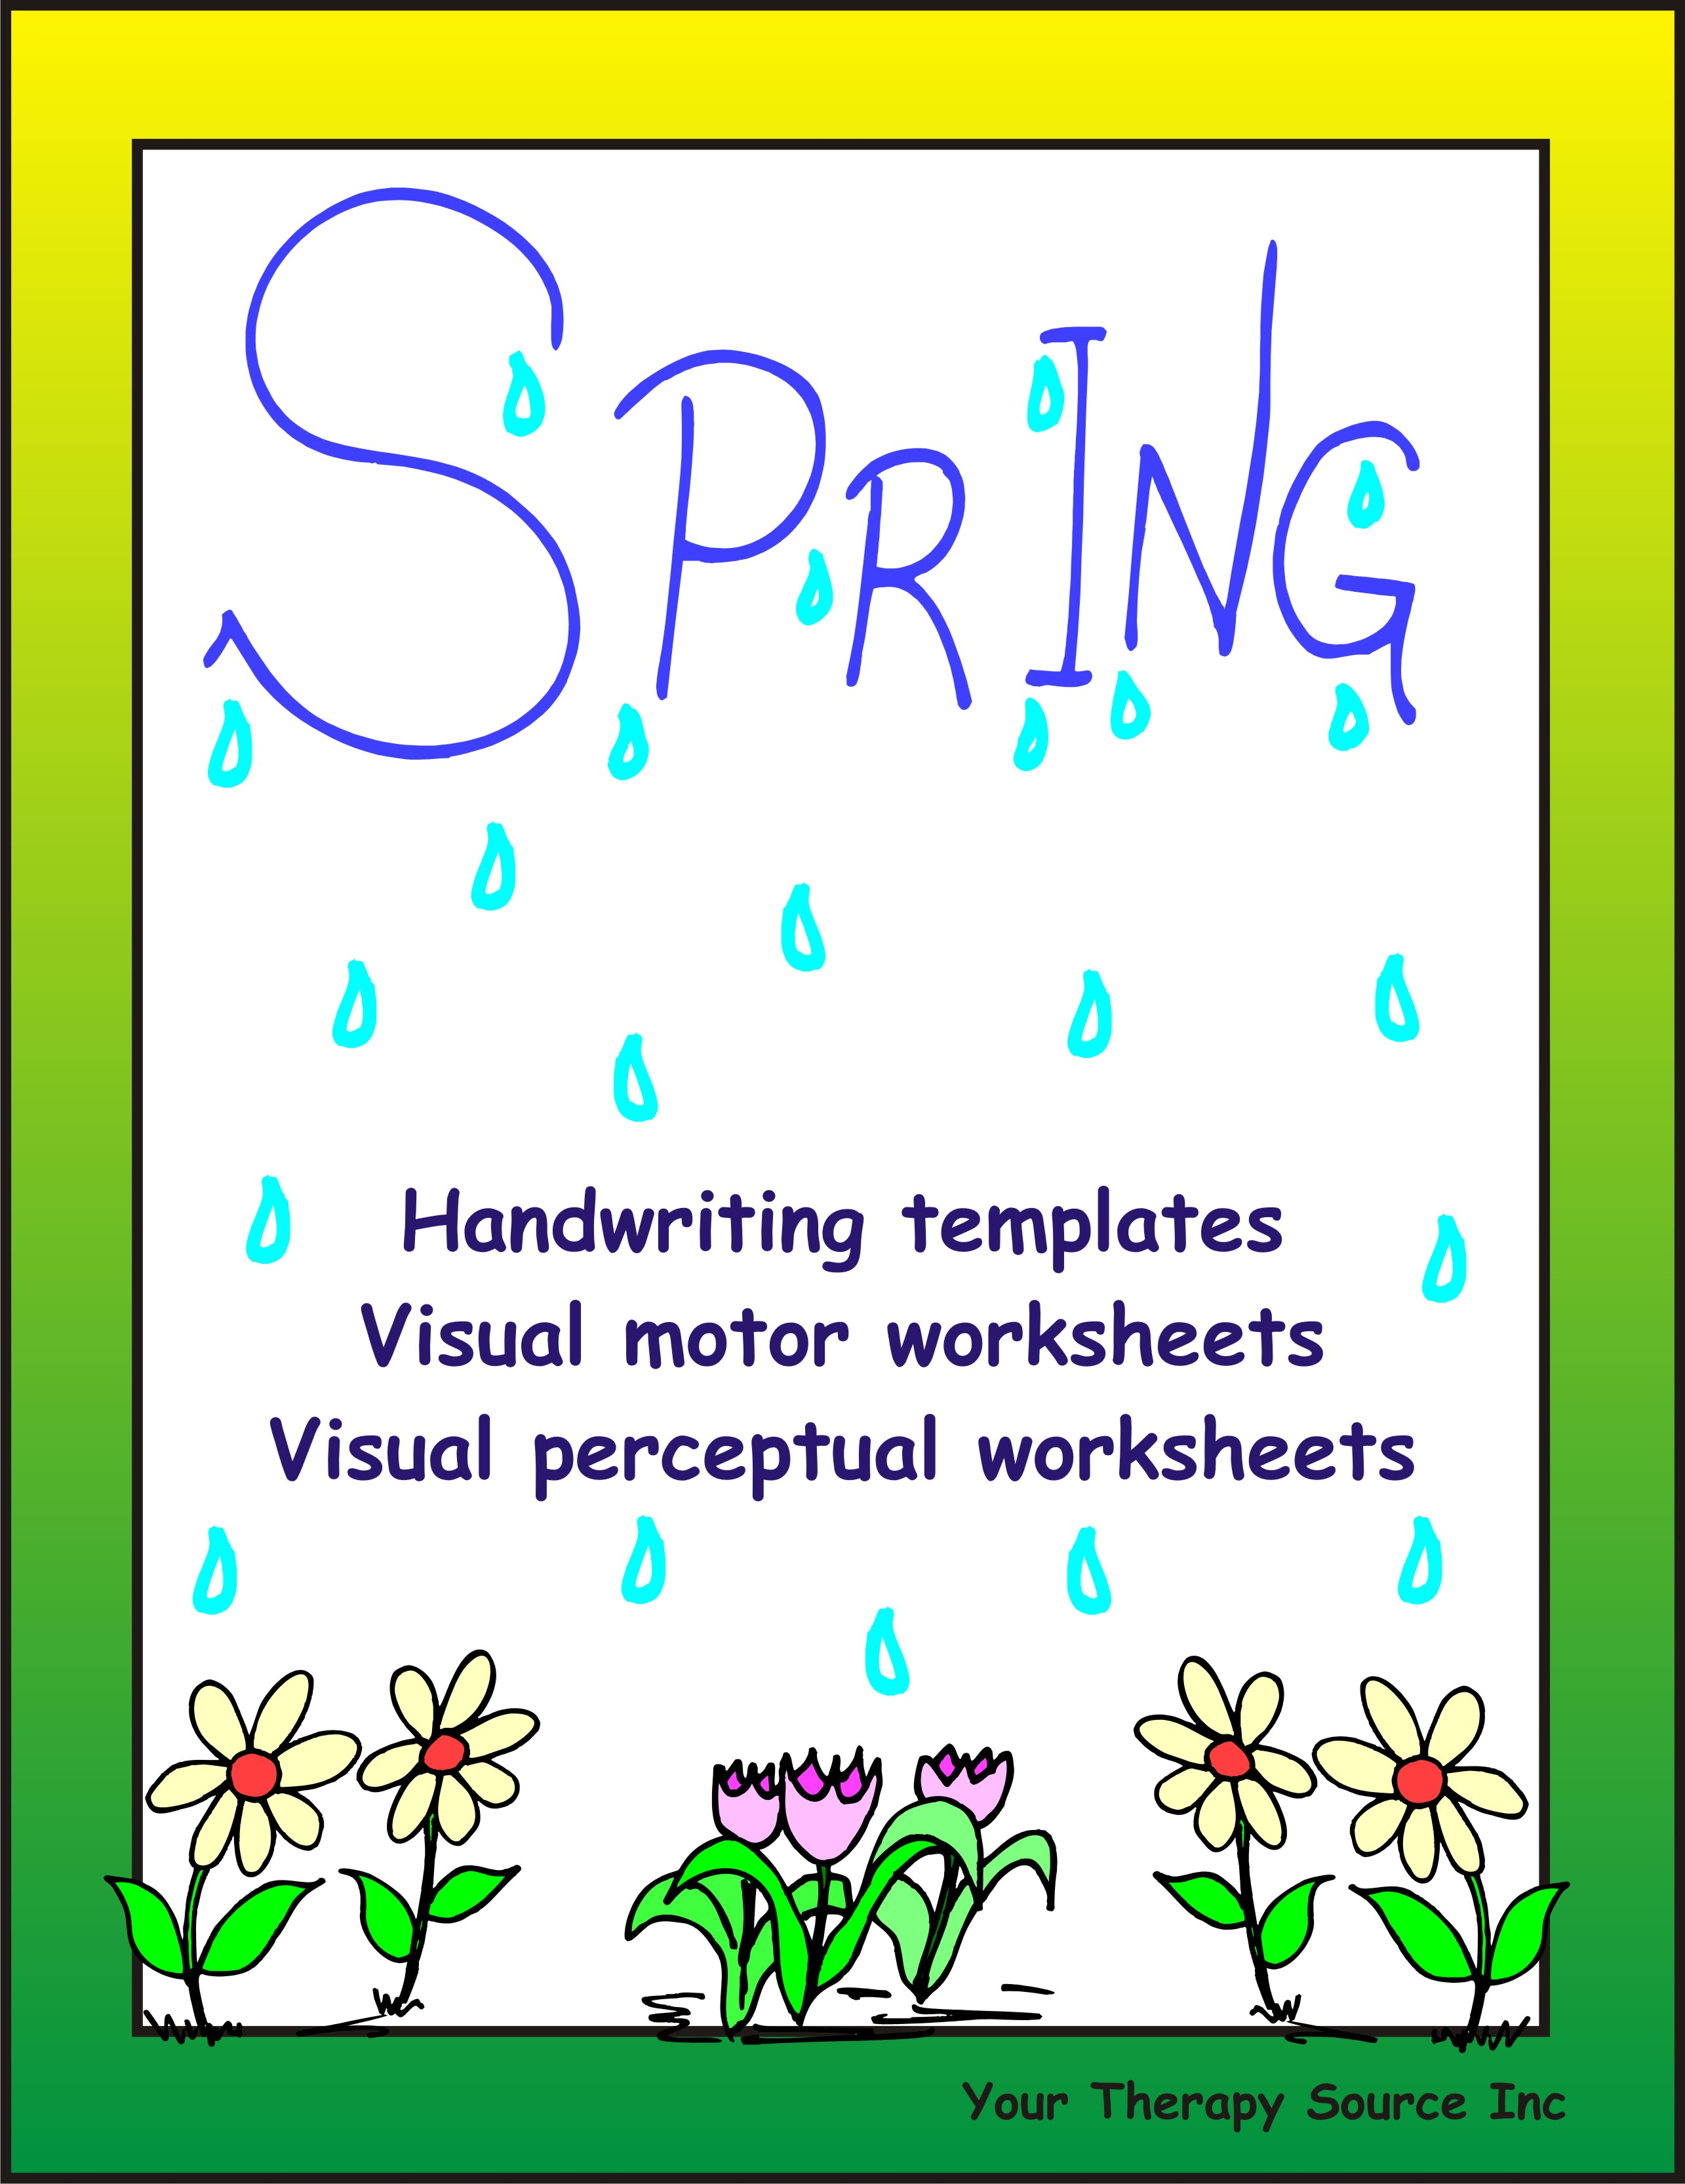 spring handwriting activities your therapy source. Black Bedroom Furniture Sets. Home Design Ideas